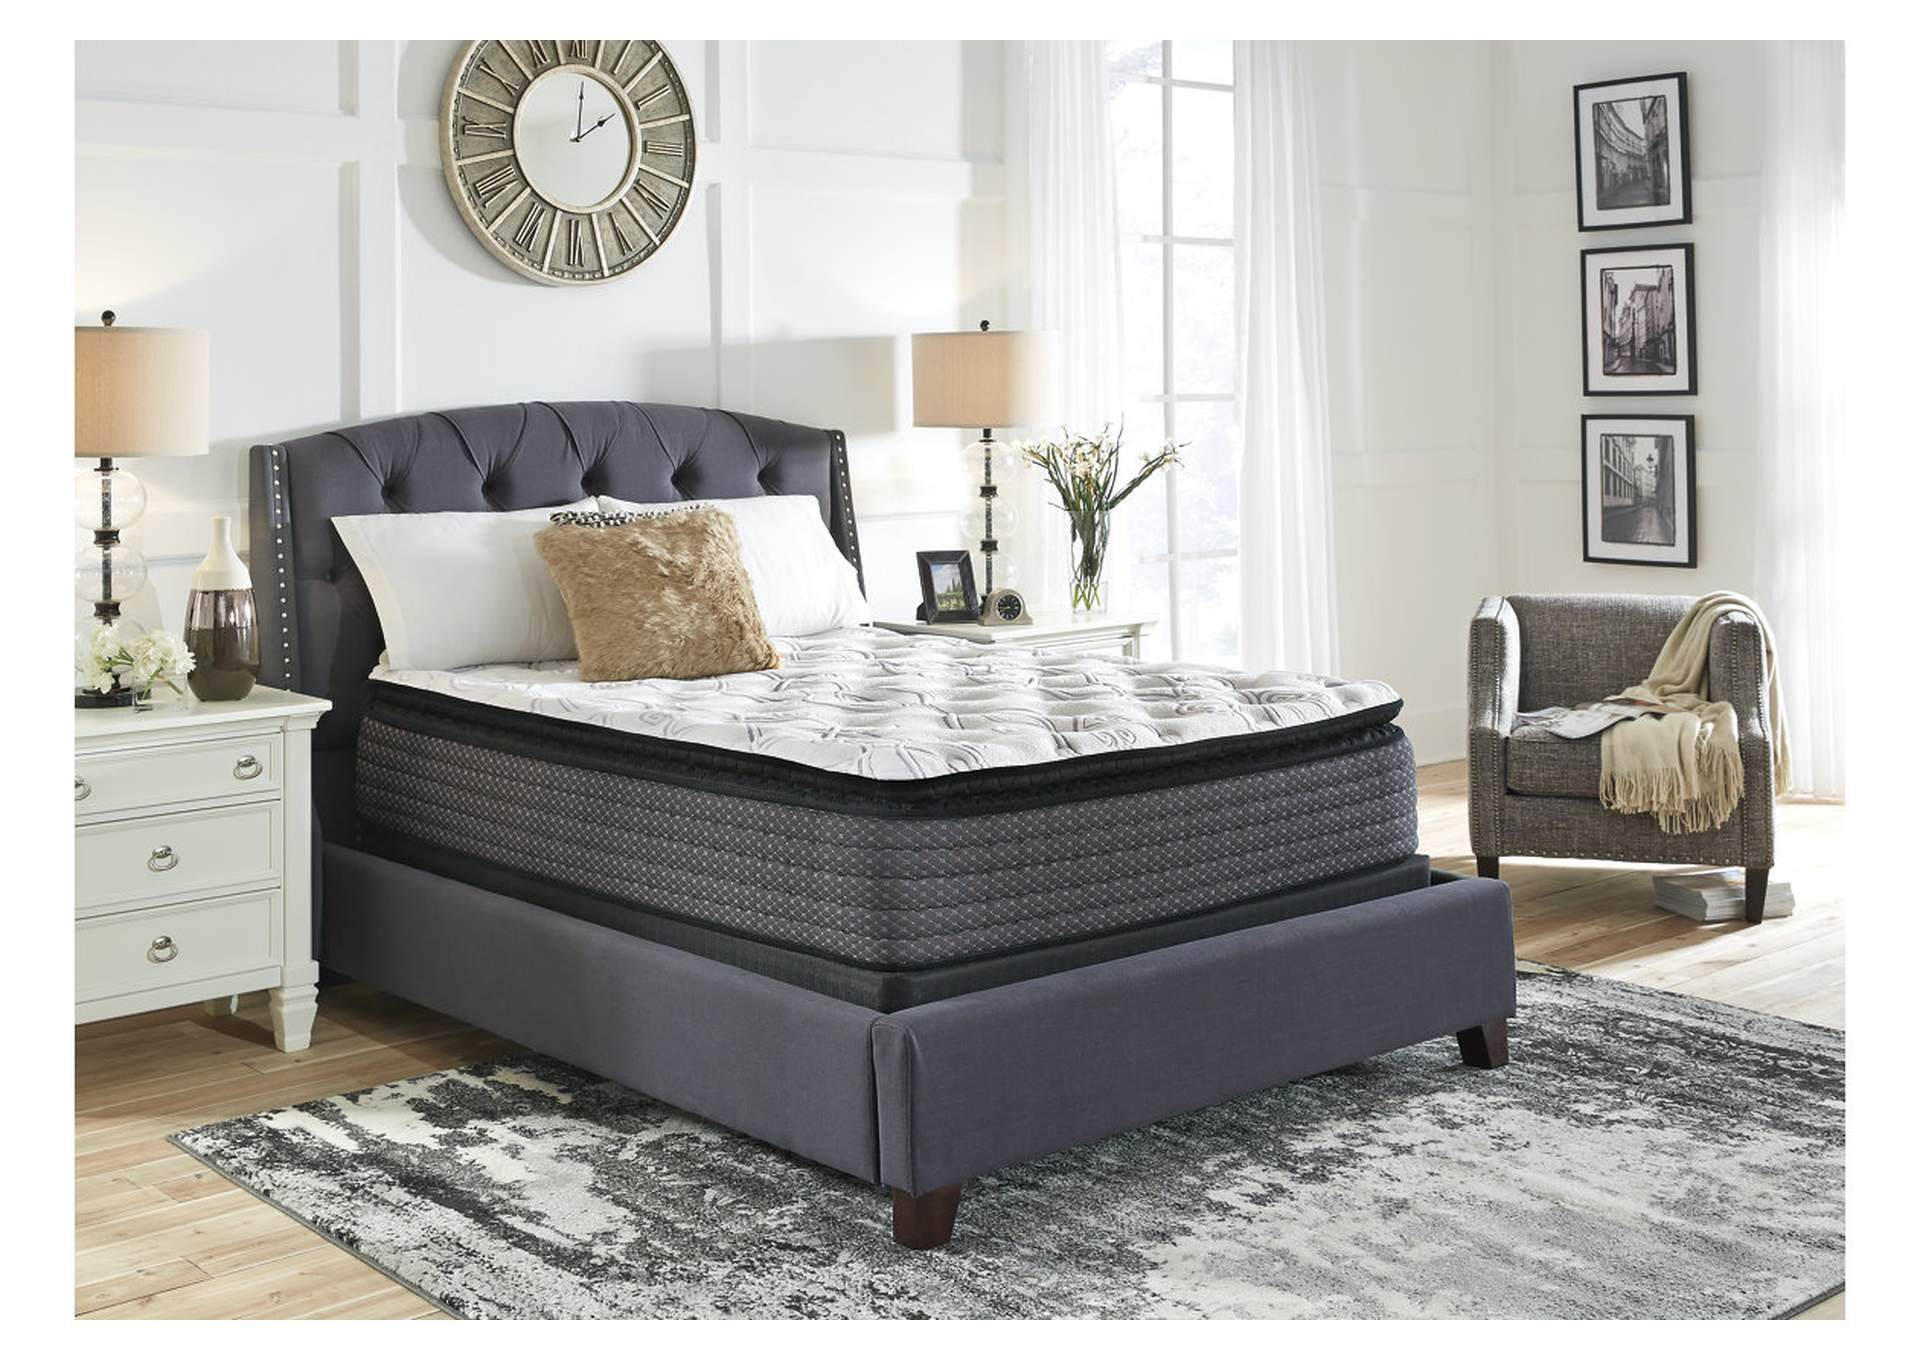 Limited Edition White Pillowtop Queen Mattress,Sierra Sleep by Ashley